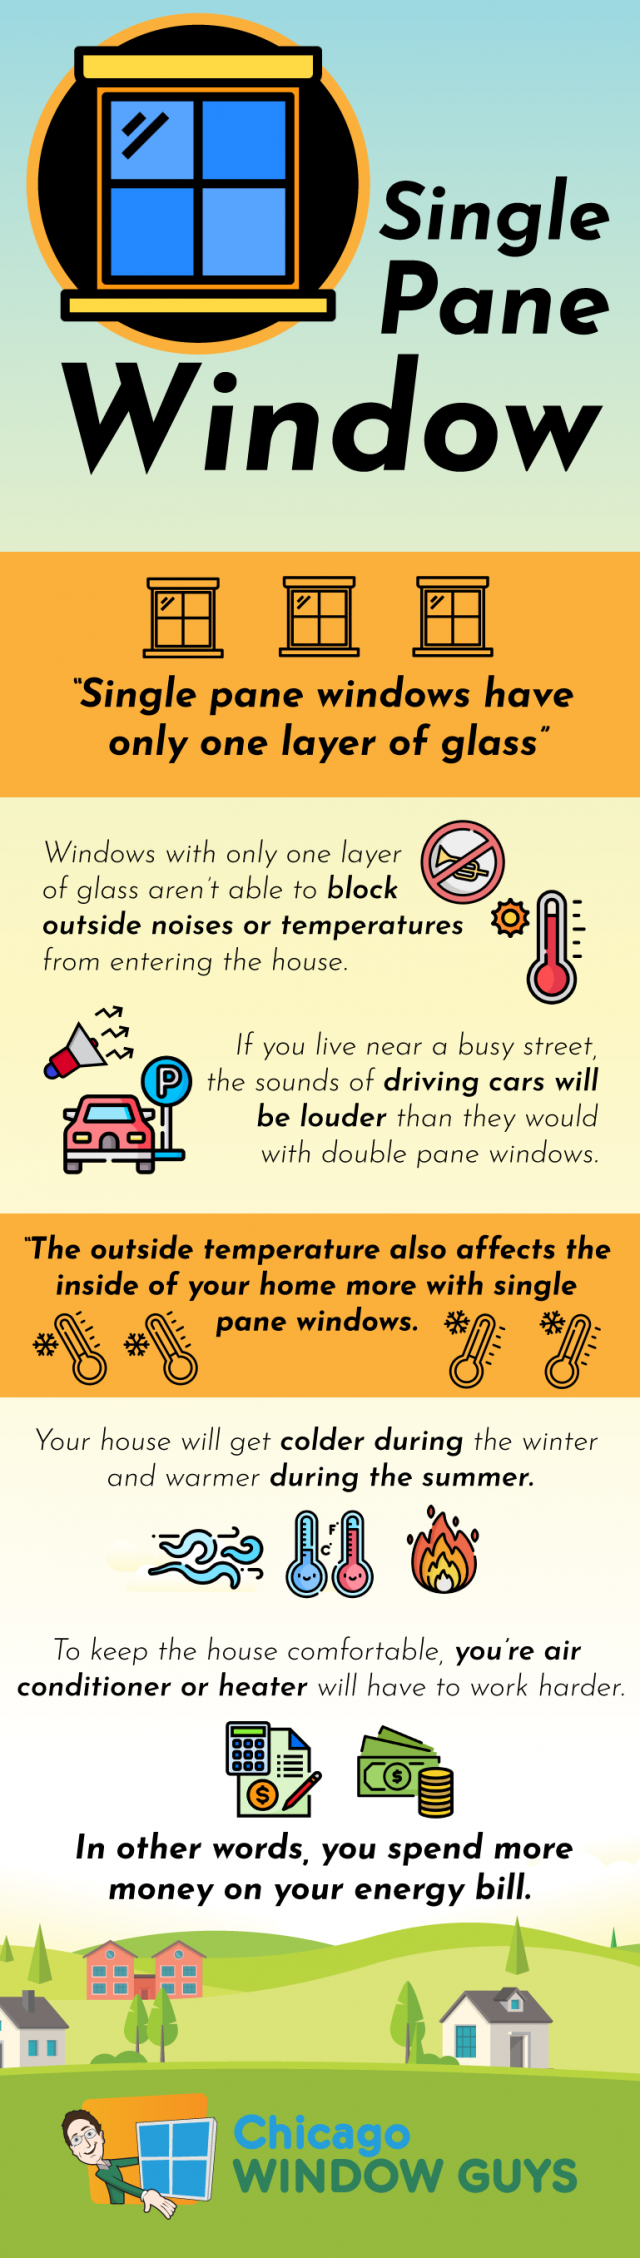 What Are Single Pane Windows?